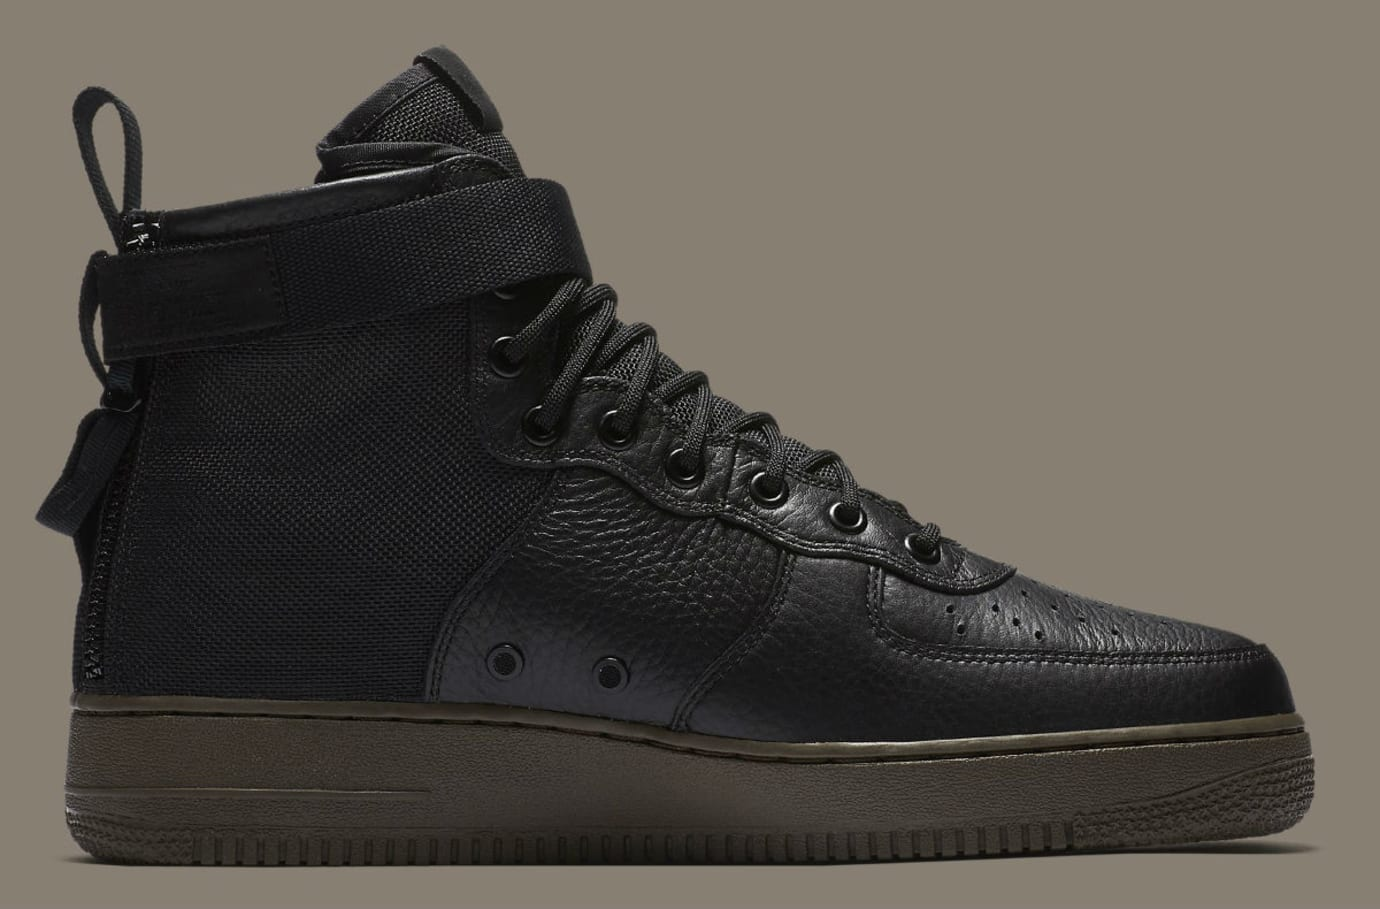 Nike SF Air Force 1 Mid Cargo Khaki Release Date Medial 917753-002